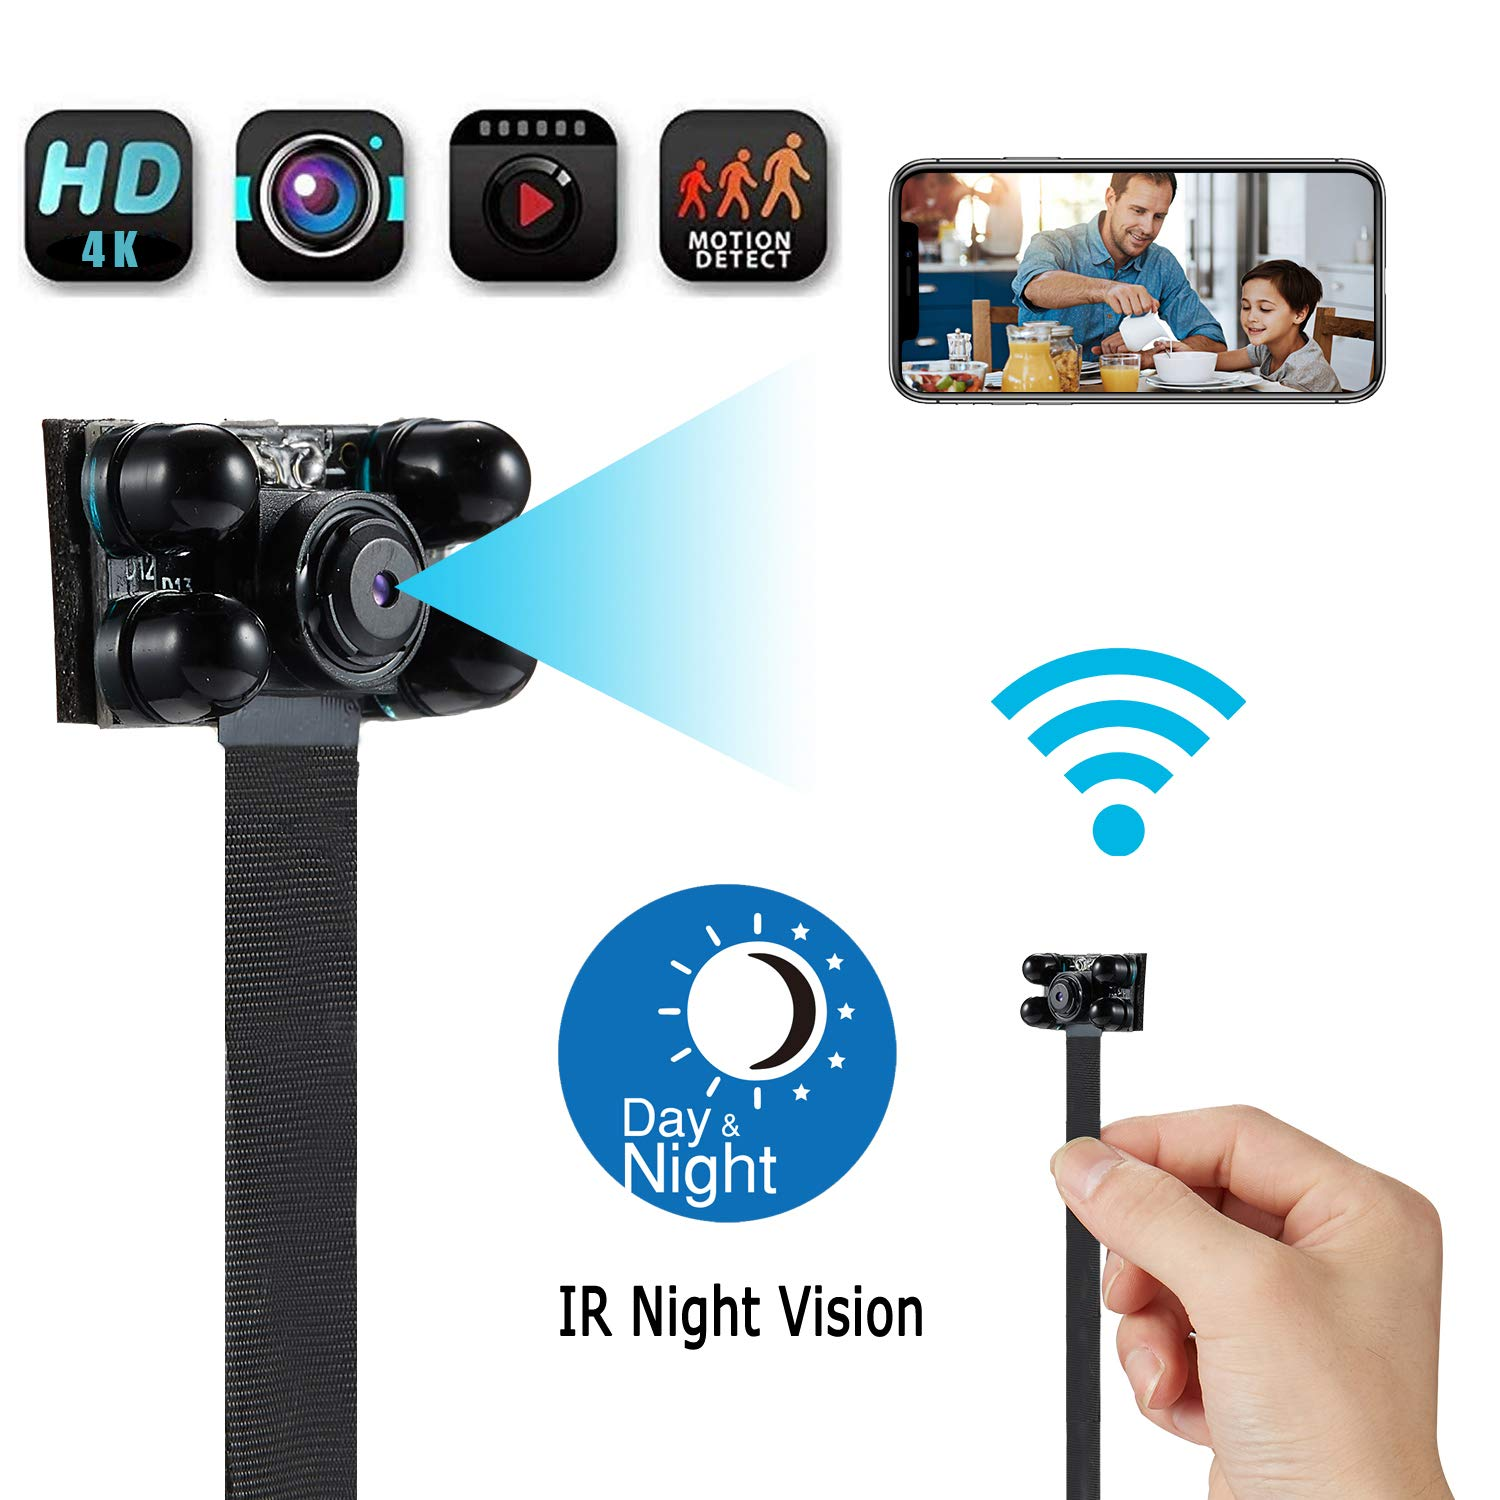 Spy Camera Wireless Hidden Camera WiFi Camera, 4K HD DIY Mini Camera Home Security Camera Small Camera Nanny Cam with Night Vision/Motion Detection/Remotely View, APP Supports Android/iOS by Qouya